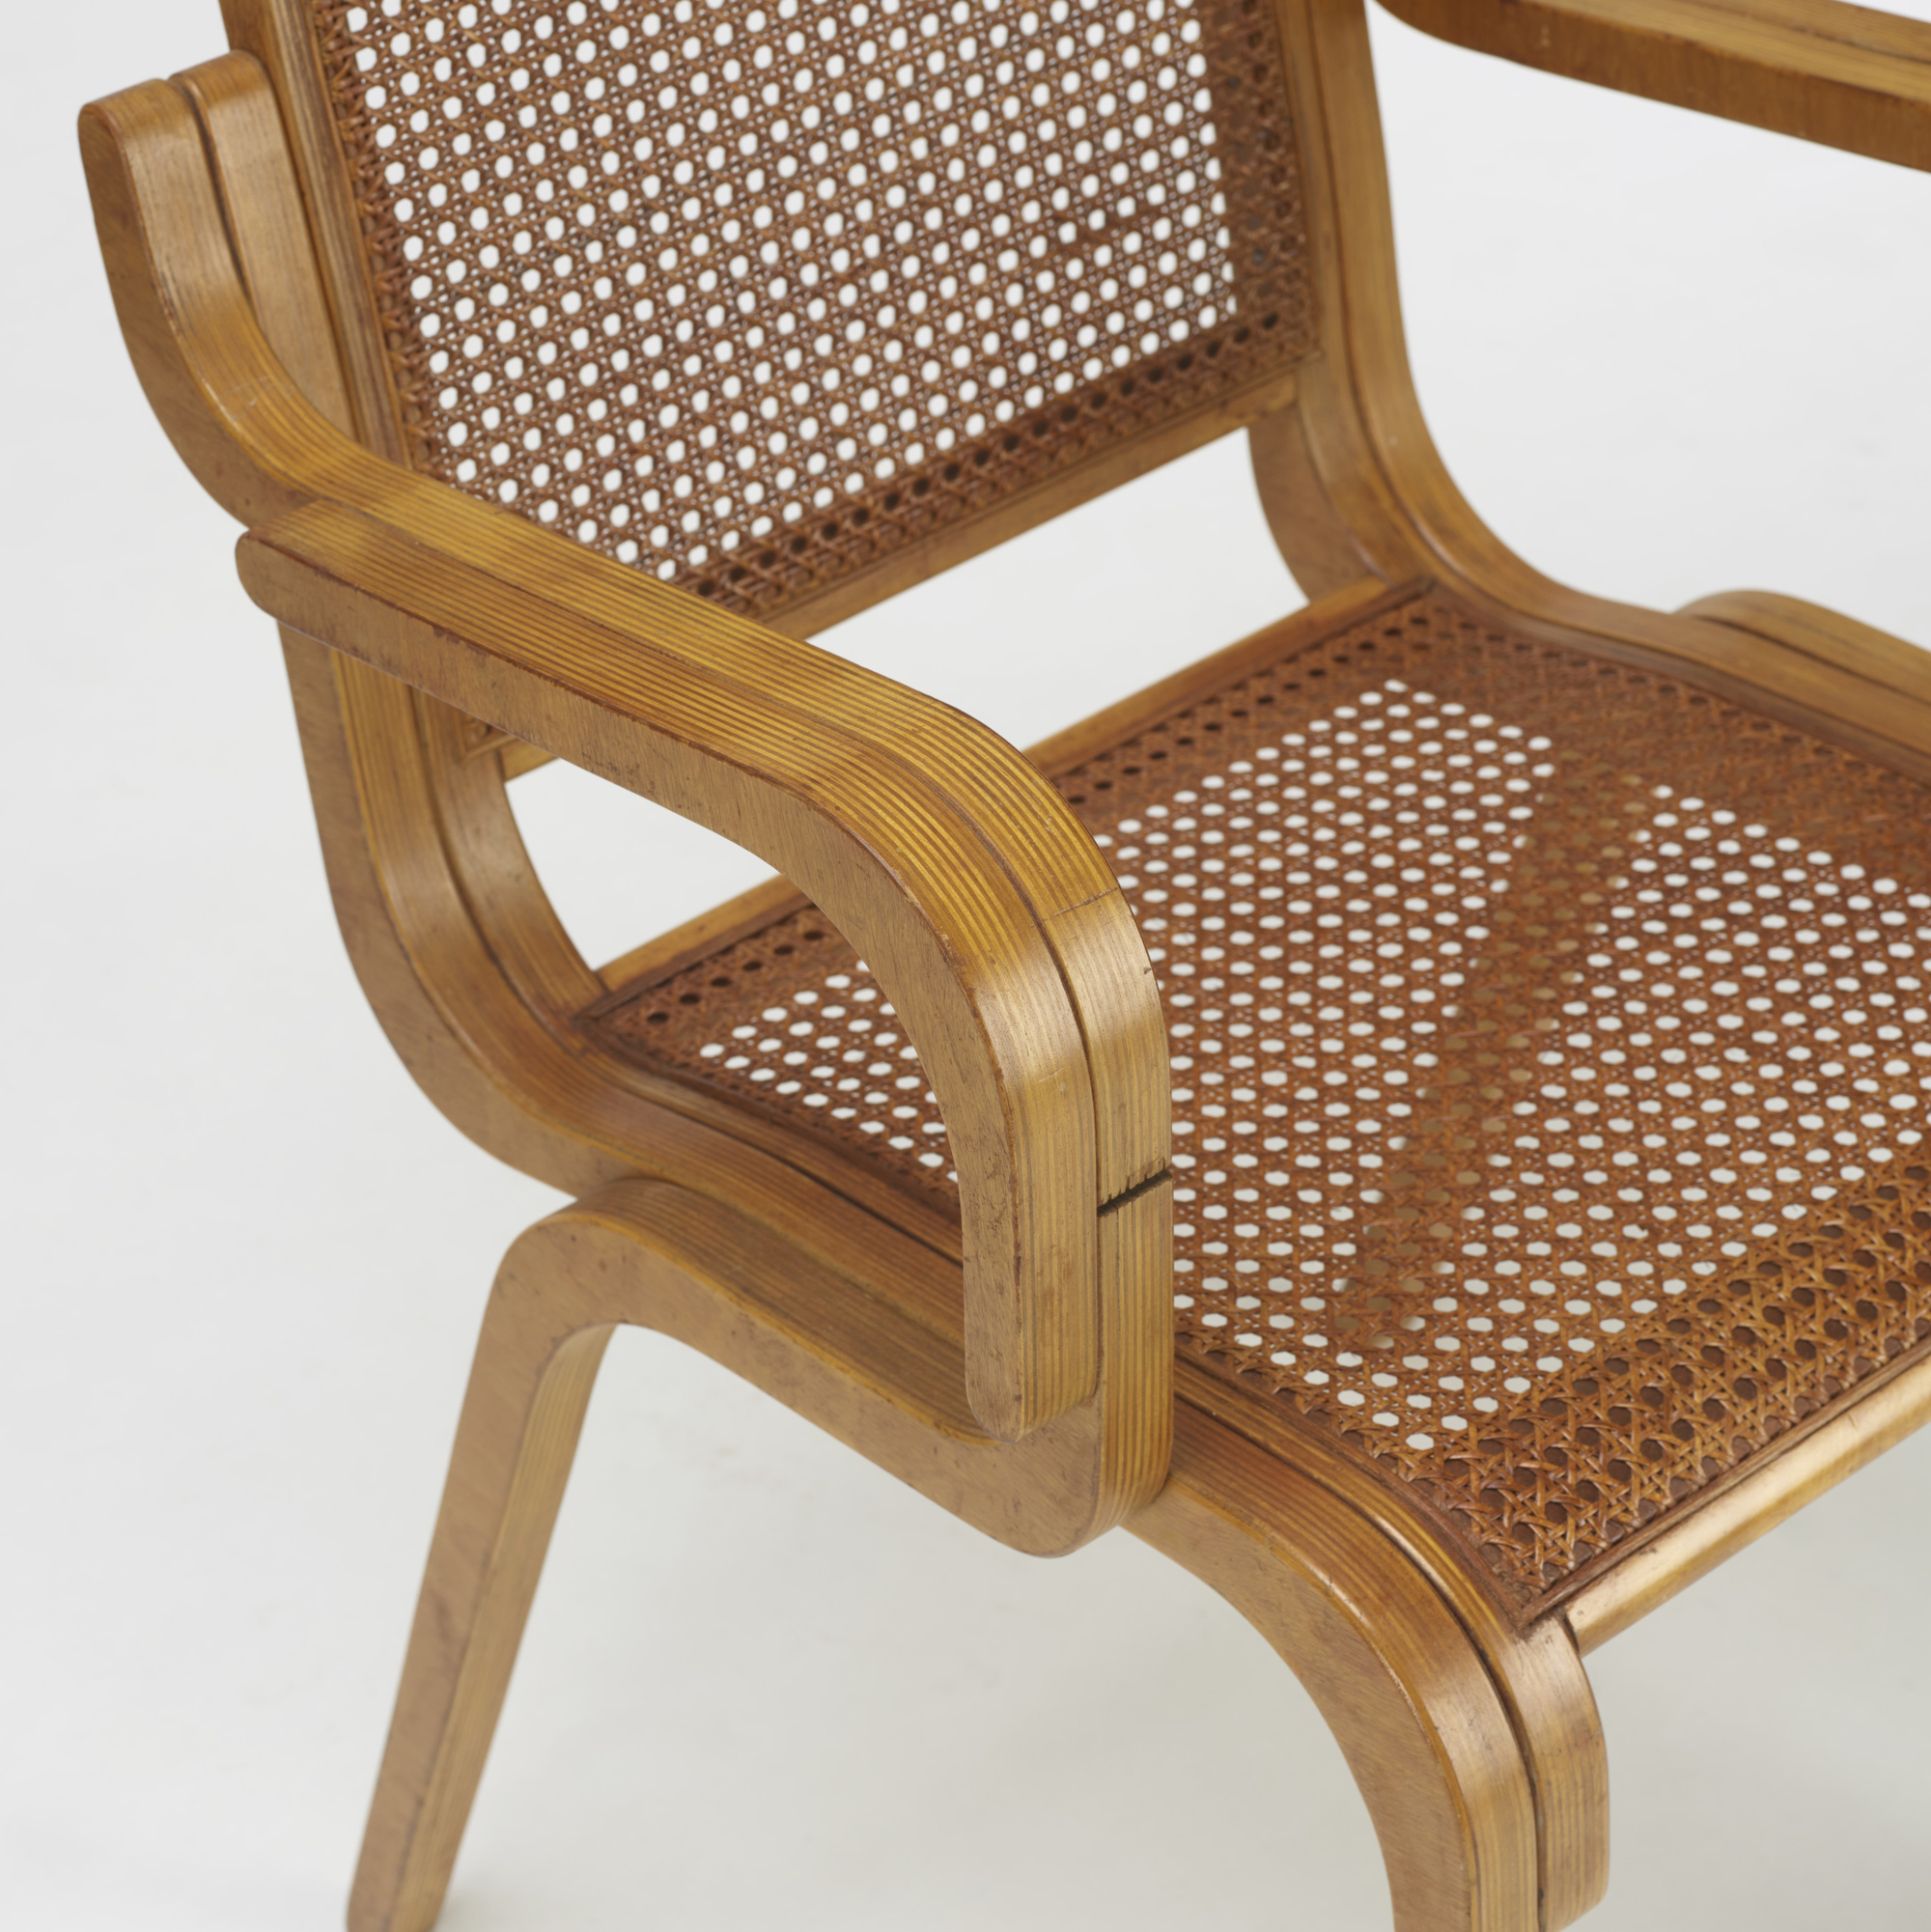 202: Marcel Breuer / rare prototype armchair and side chair (3 of 3)